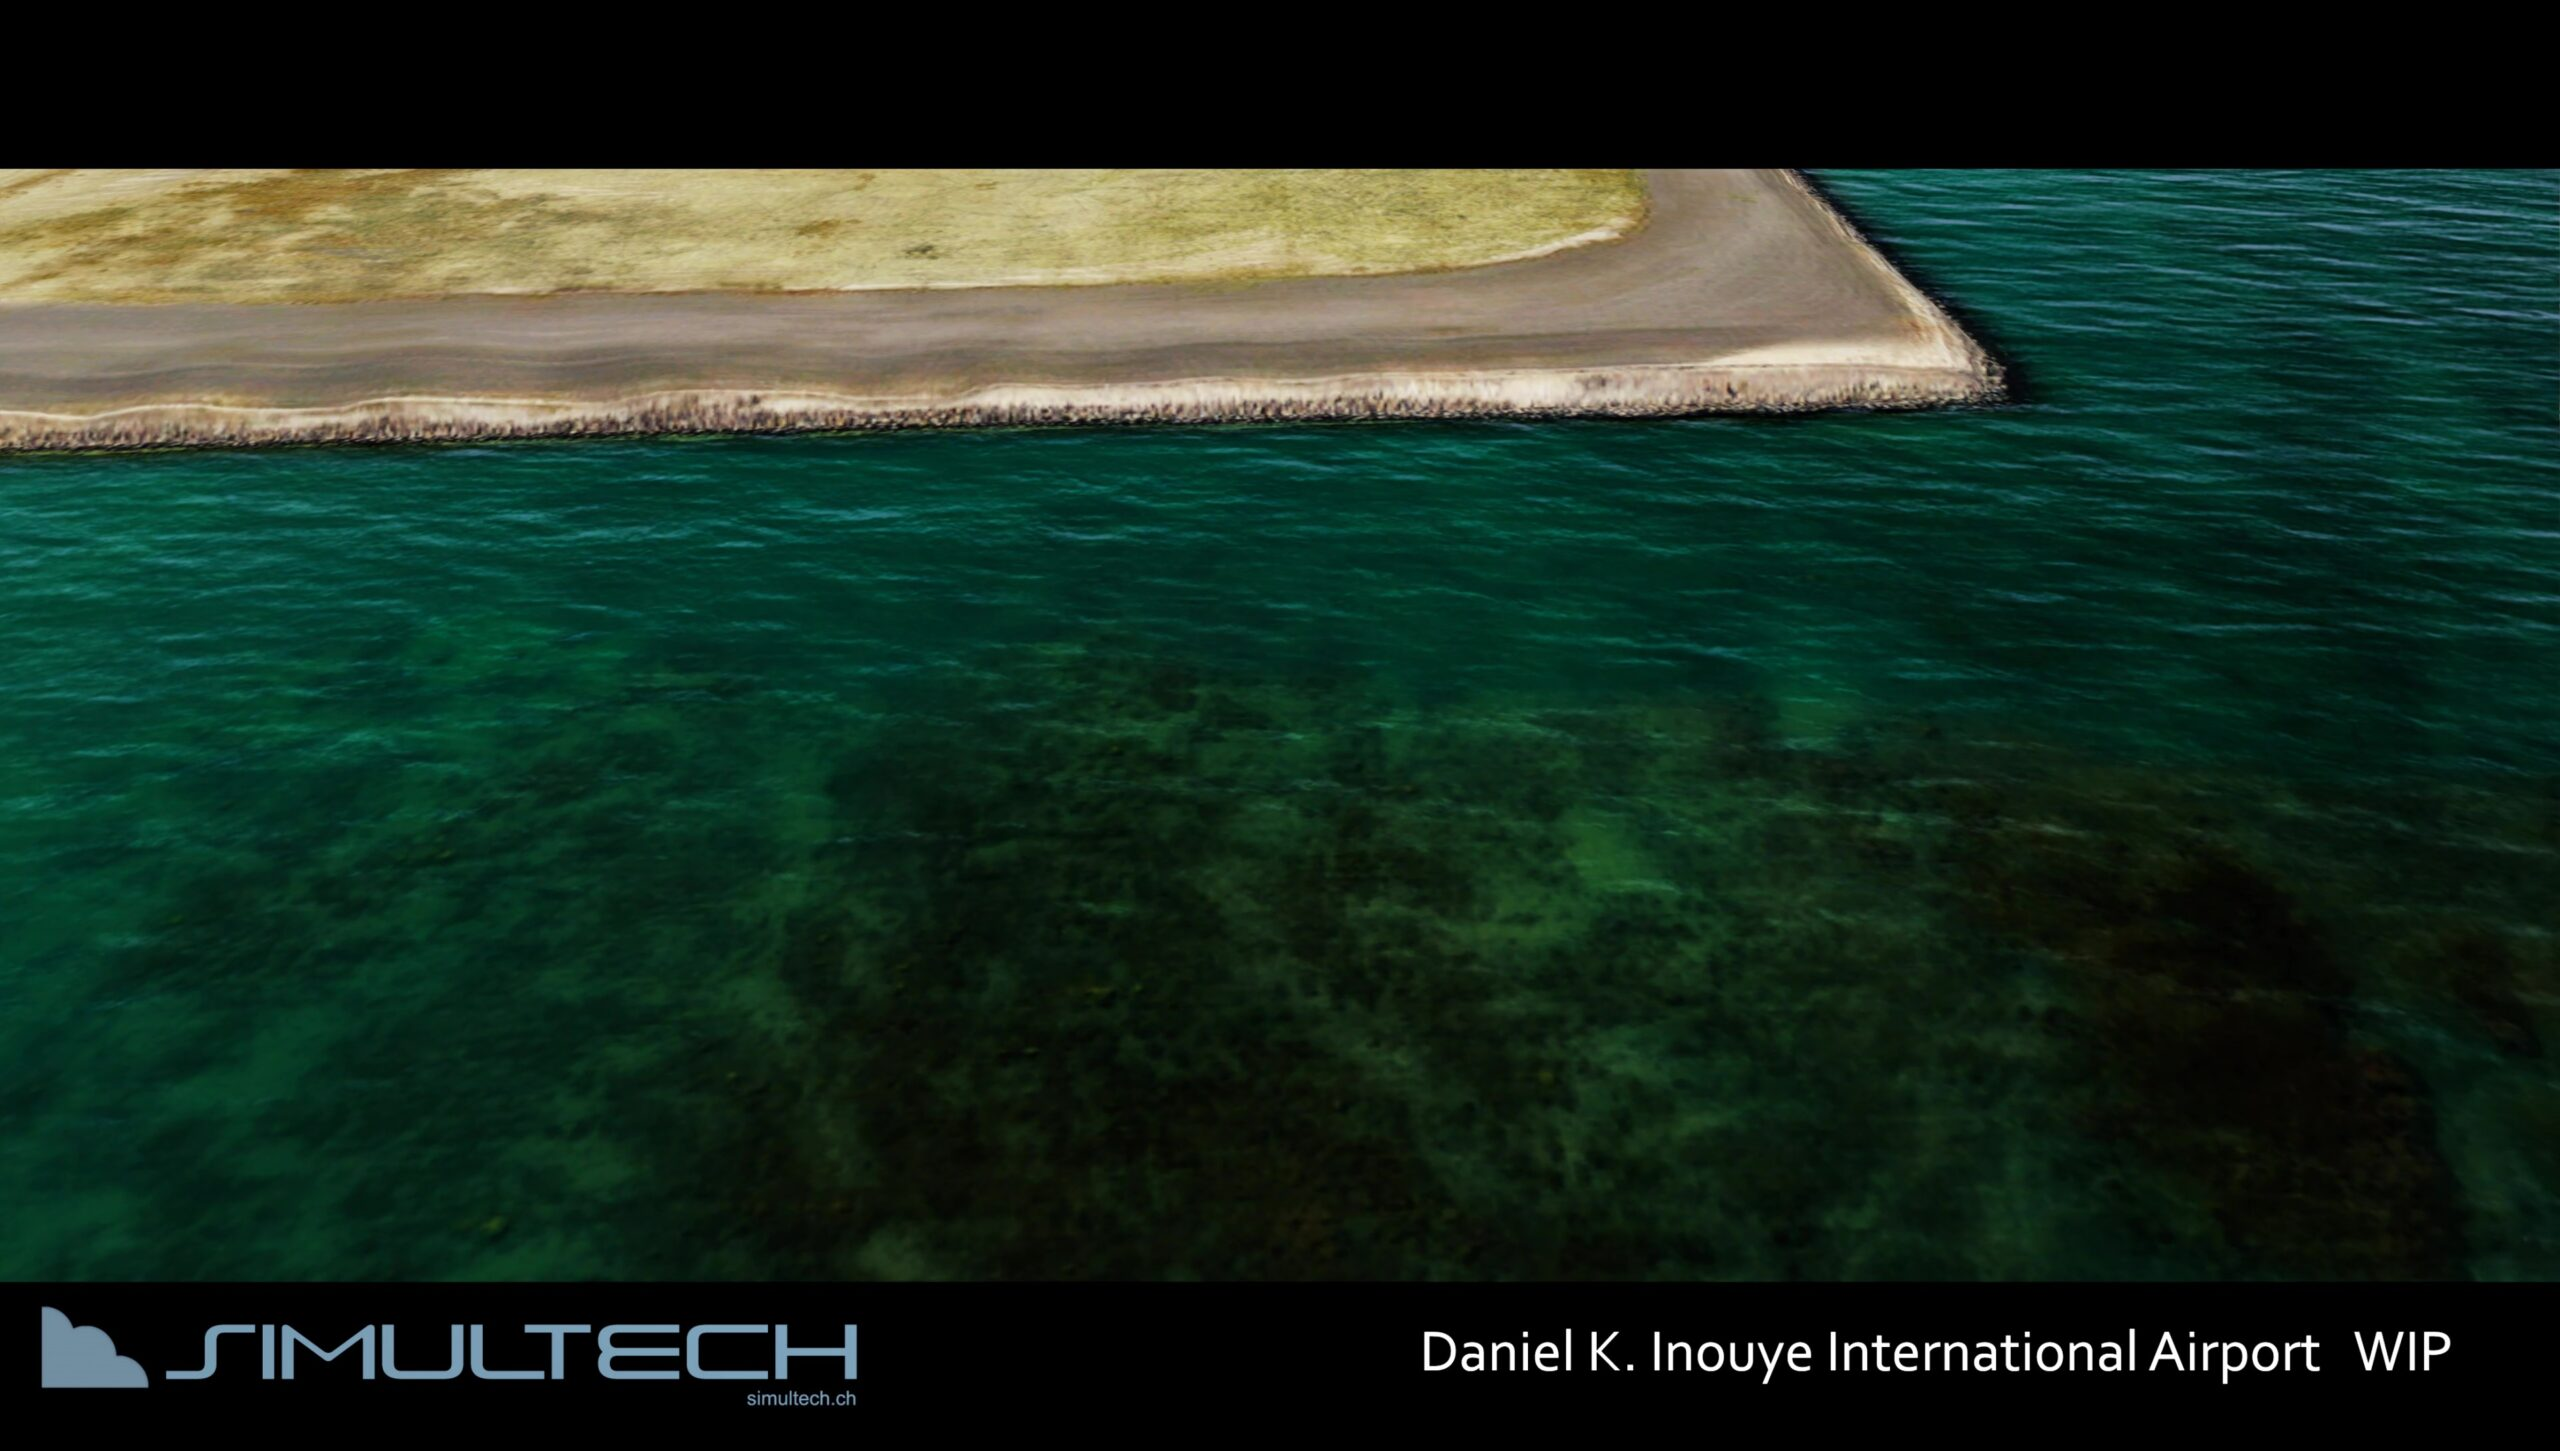 Bathymetry and interaction with the photographic background